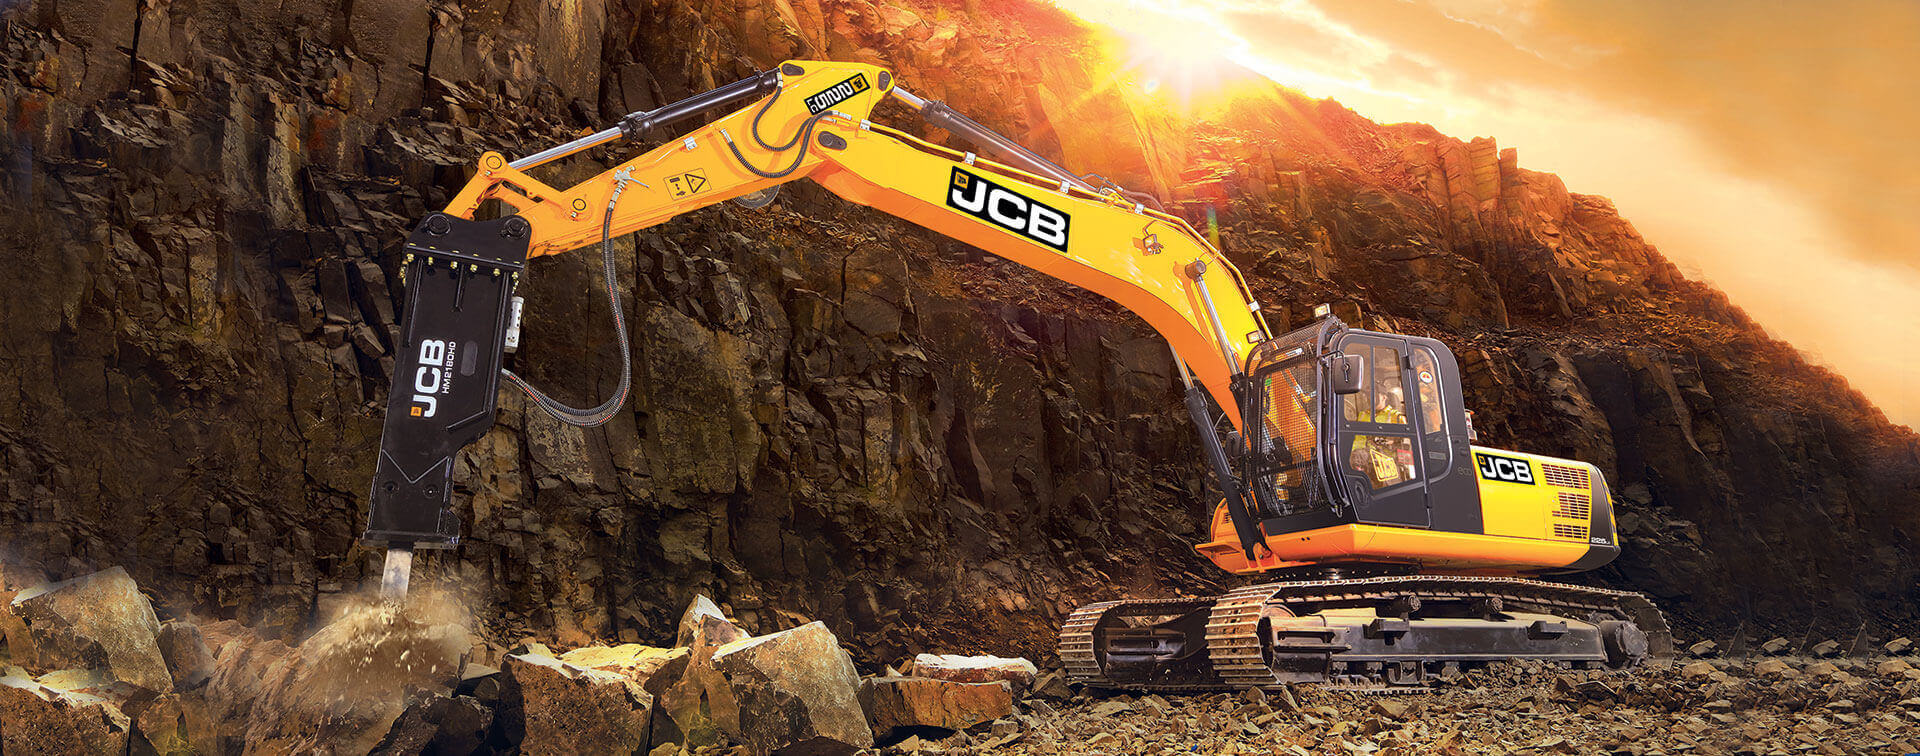 JCB Excavator Commercial Vehicle